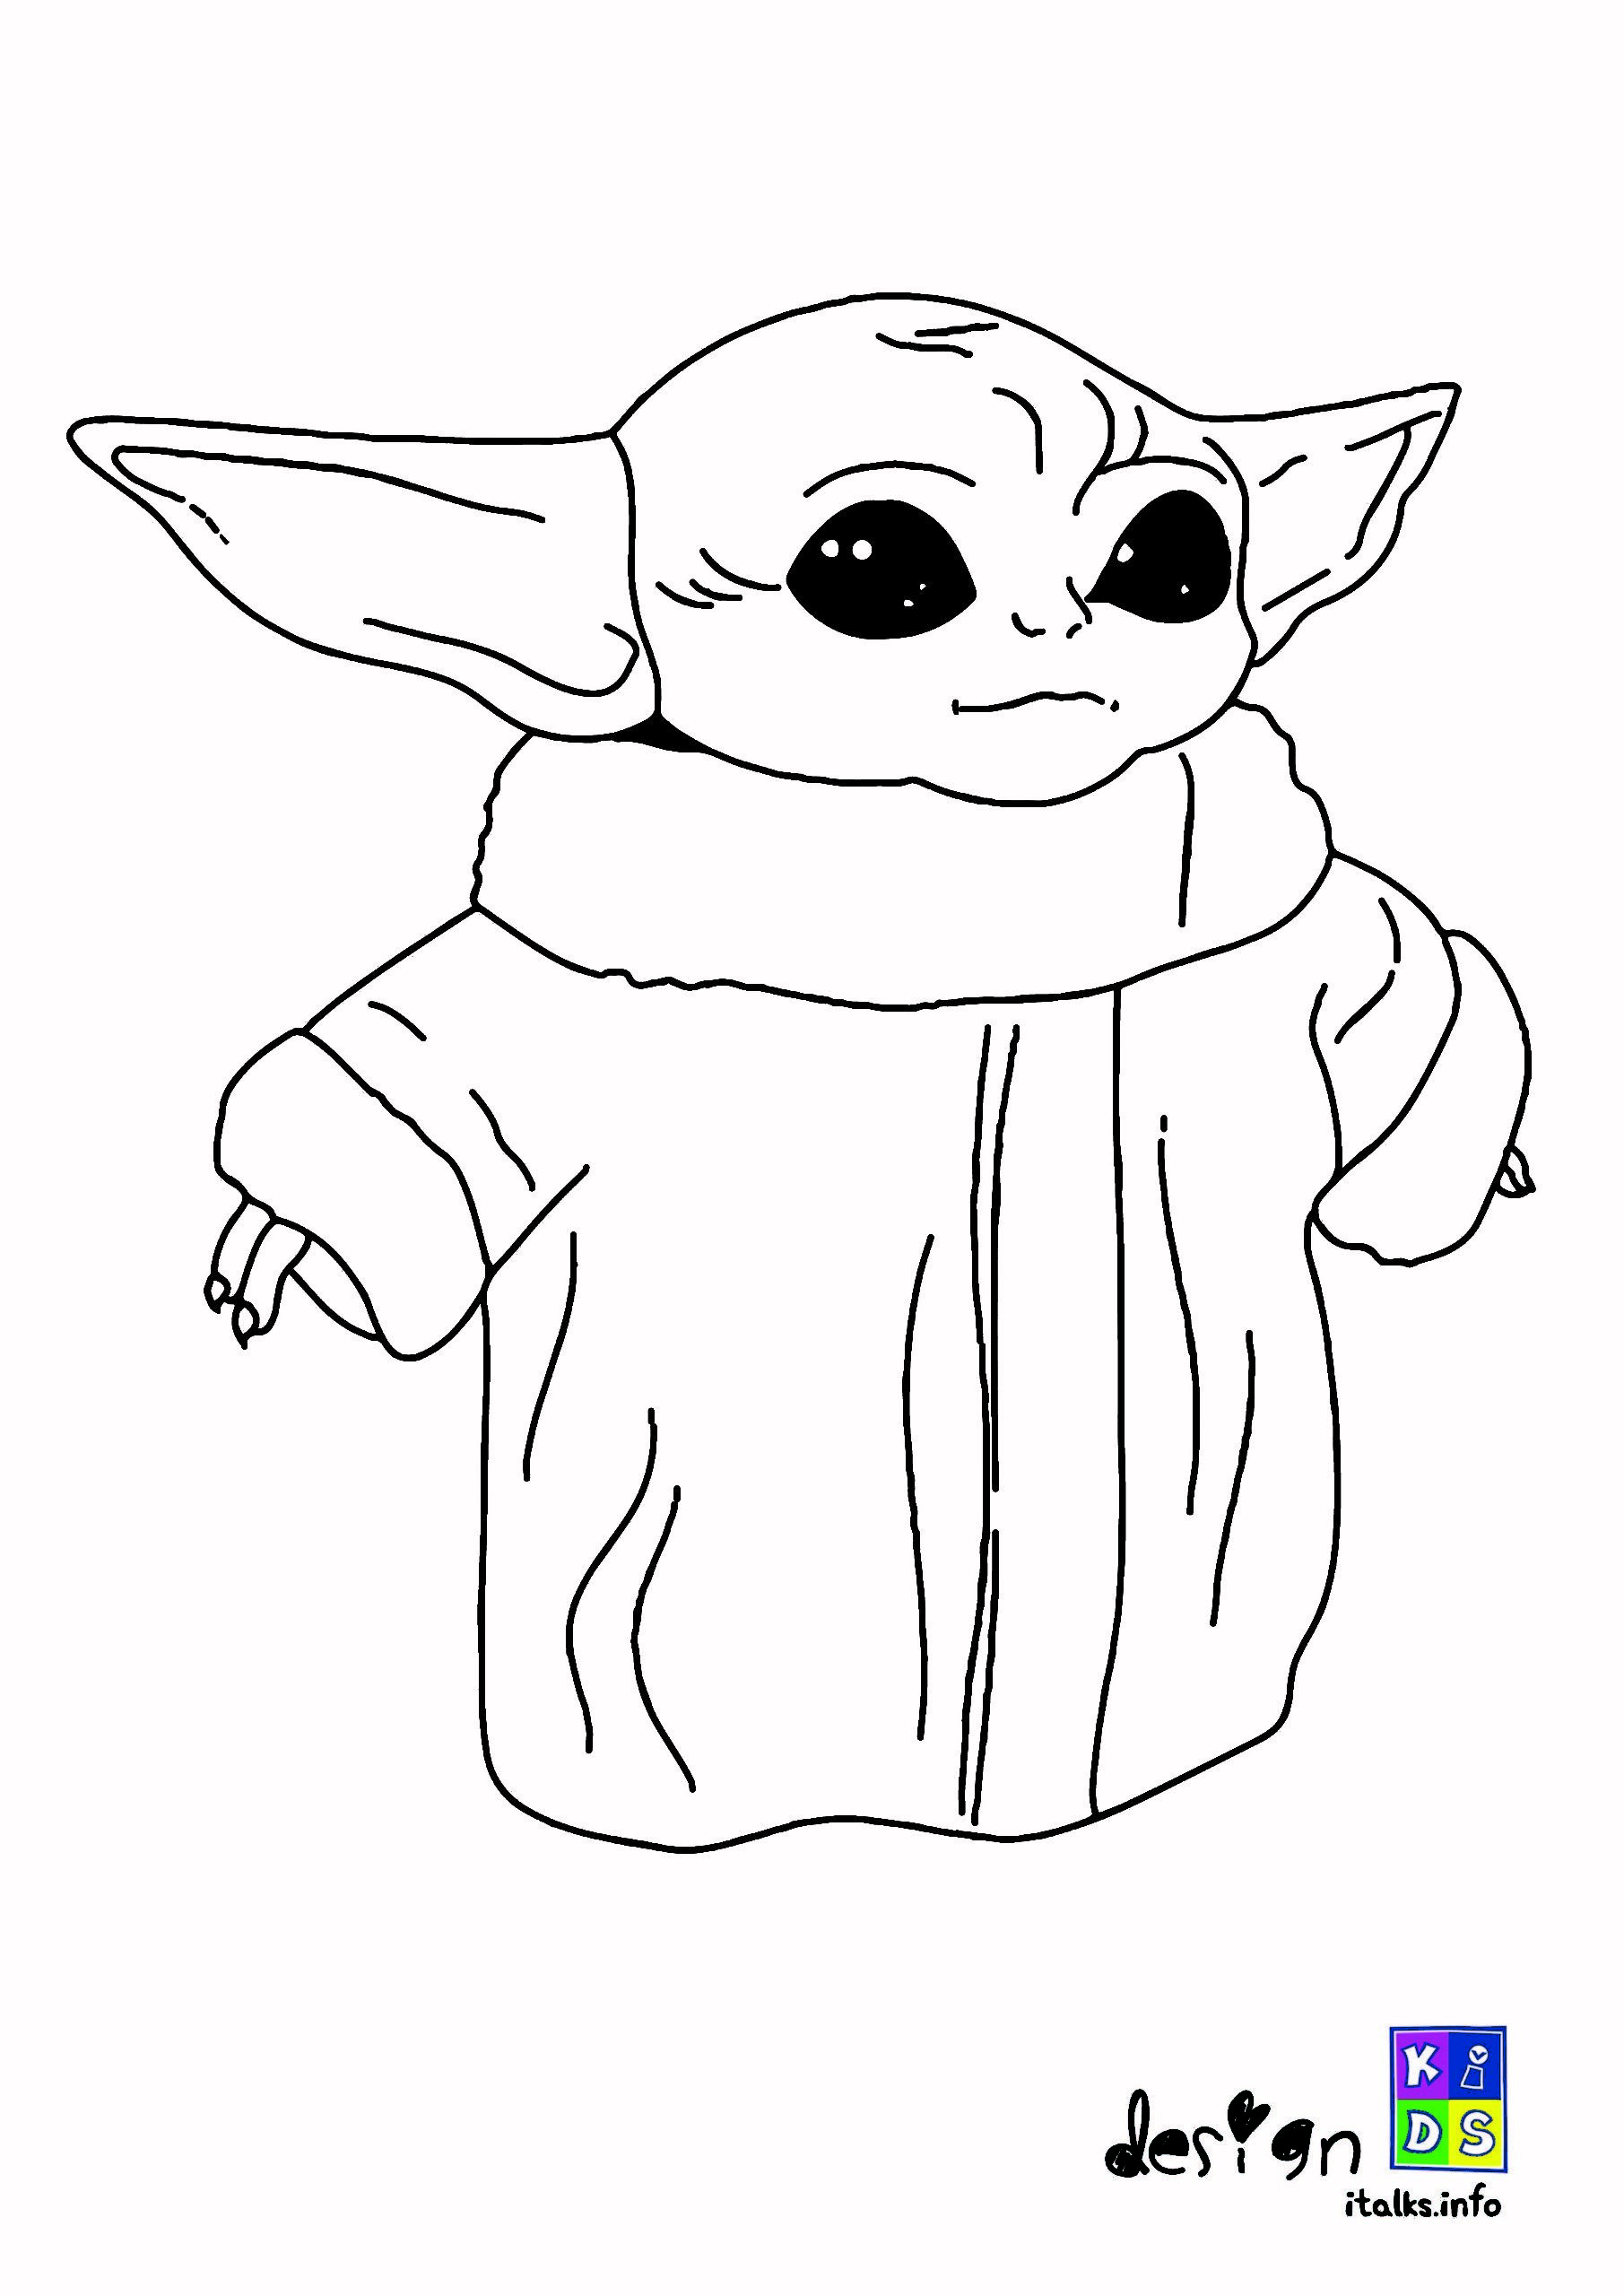 Free Baby Yoda Coloring Pages : coloring, pages, Coloring, Pages, Books,, Pages,, Printable